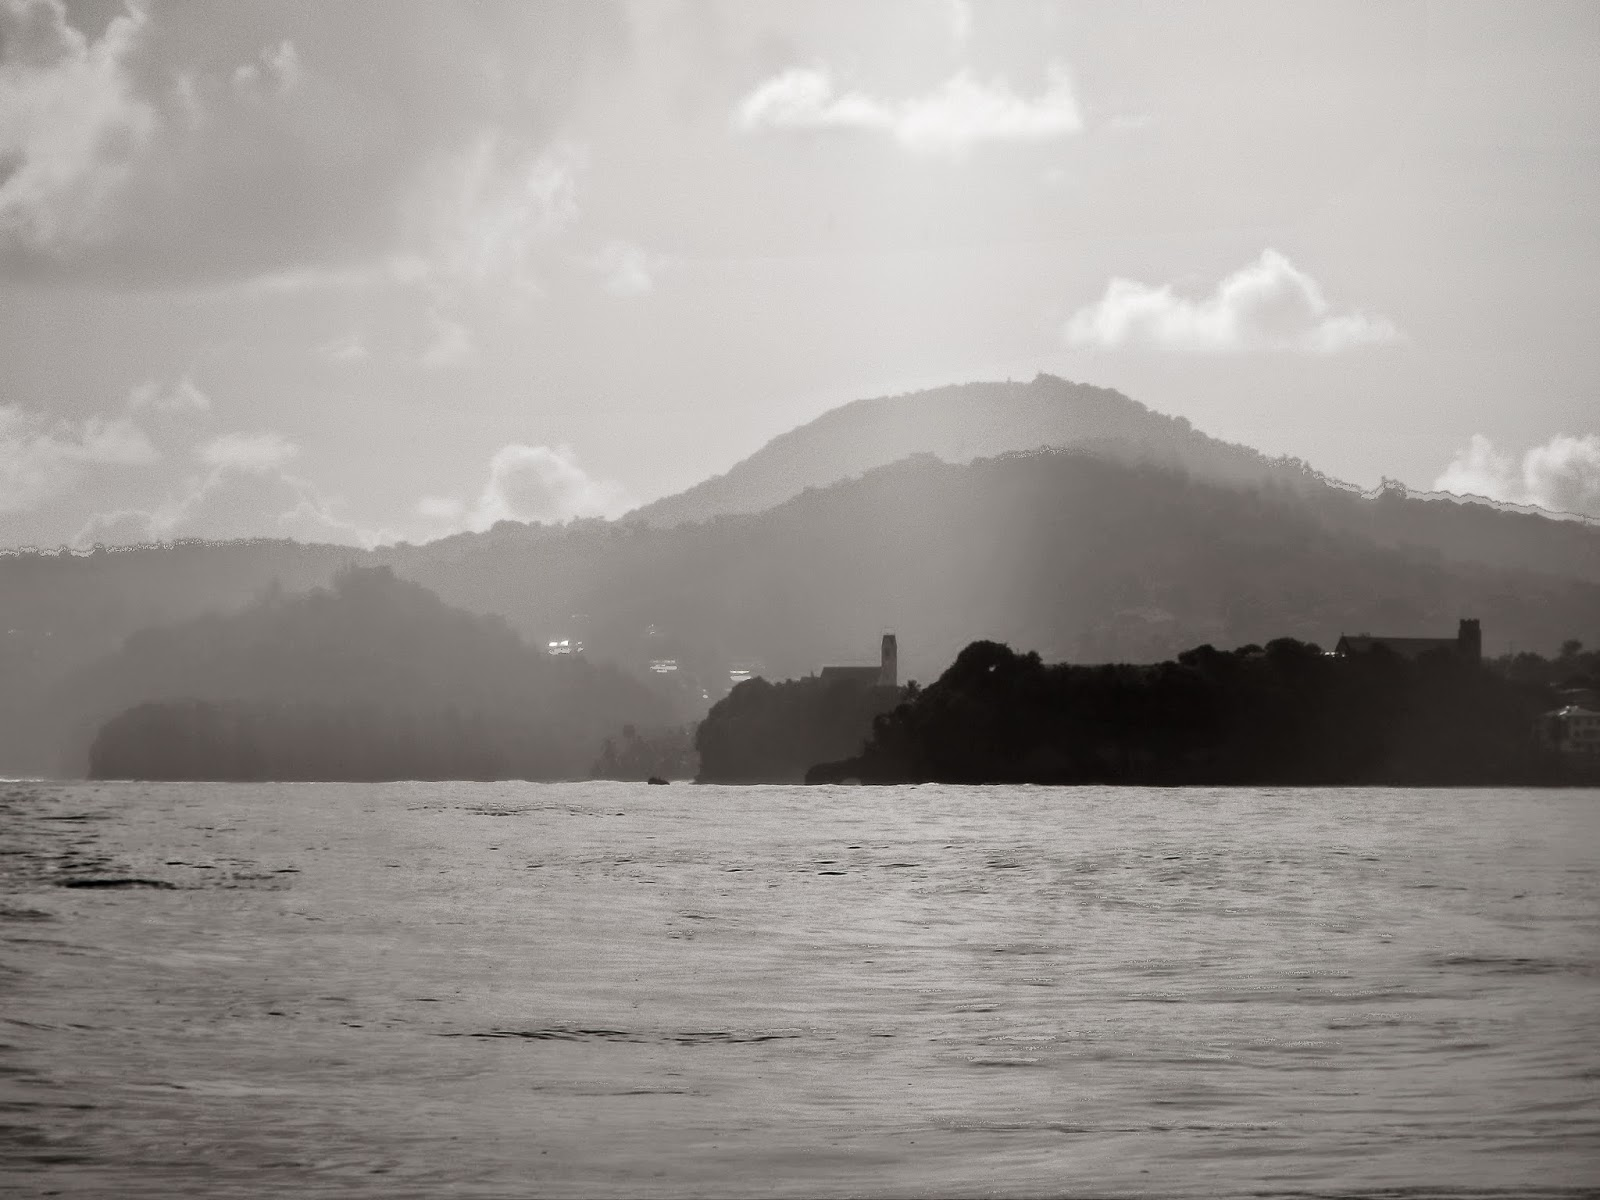 Sauteurs, Grenada on a cloudy day